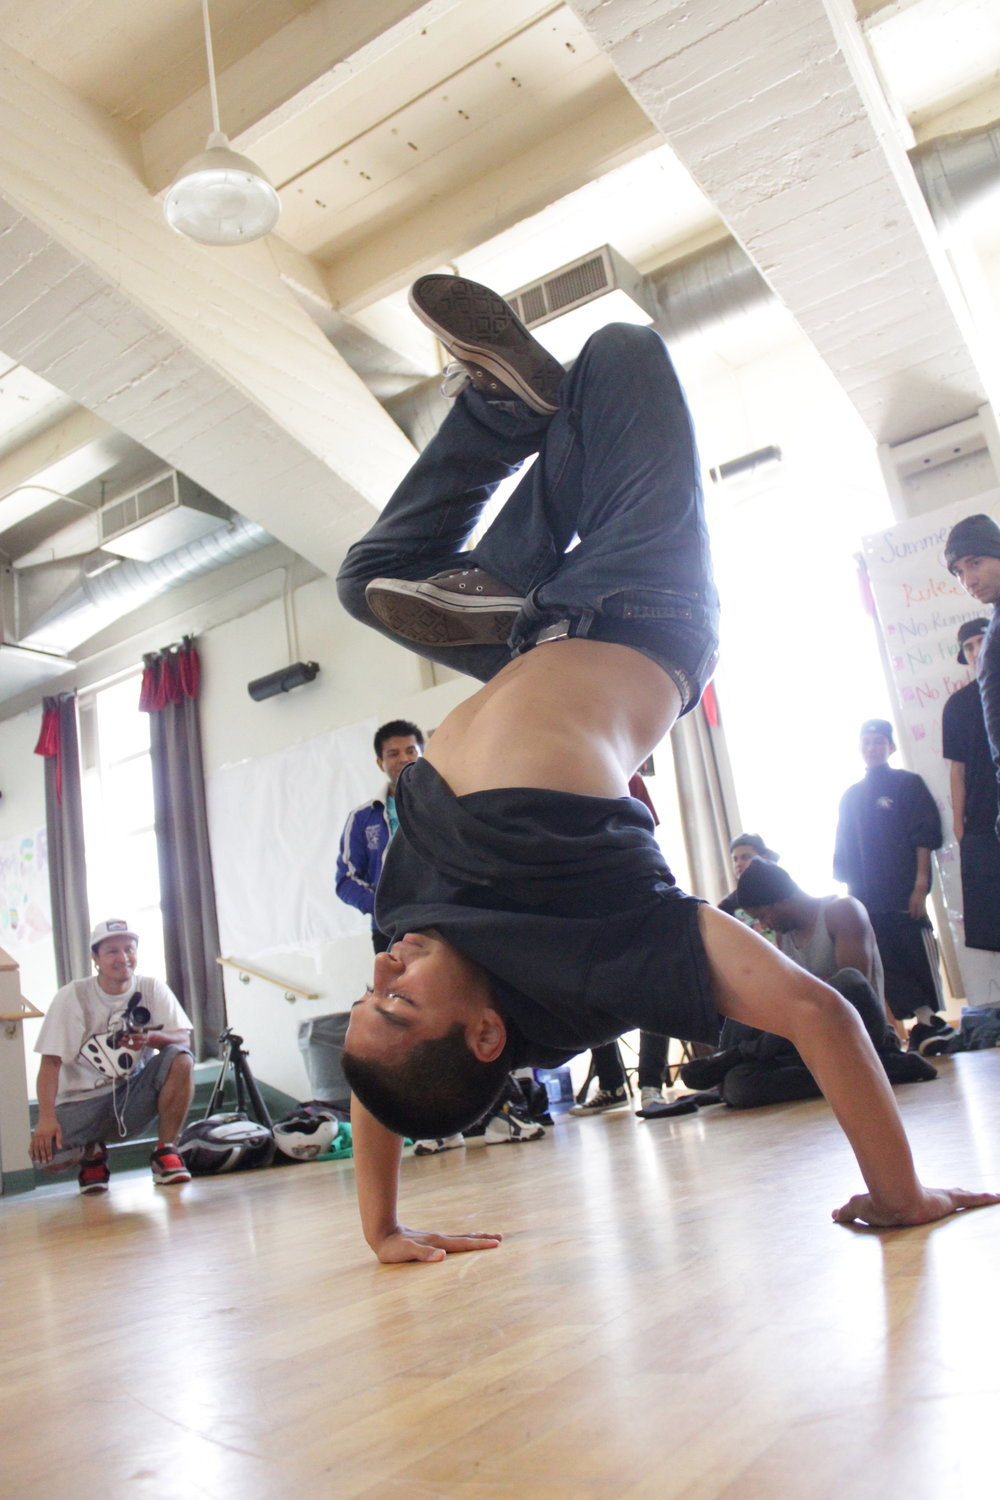 JUiCE Los Angeles Hip Hop Nonprofit Breakdance Music Art Community Youth Breakdance Los Angeles Bbboying Freeze.jpg